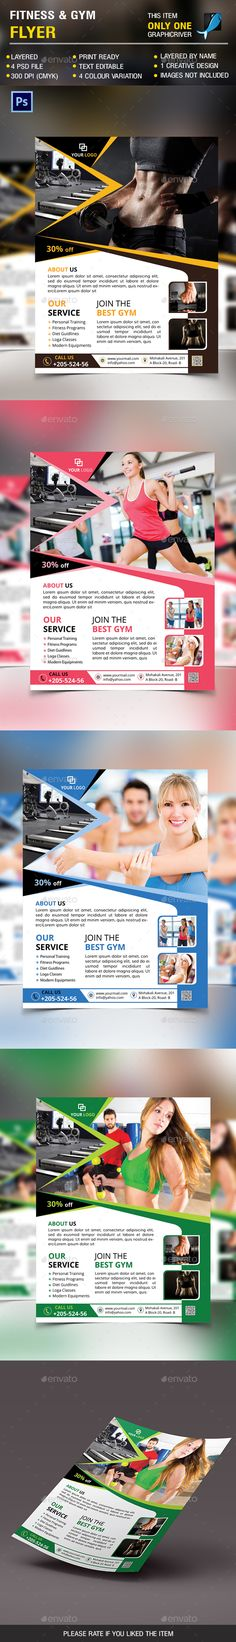 Fitness & Gym Flyer — Photoshop PSD #training #multipurpose